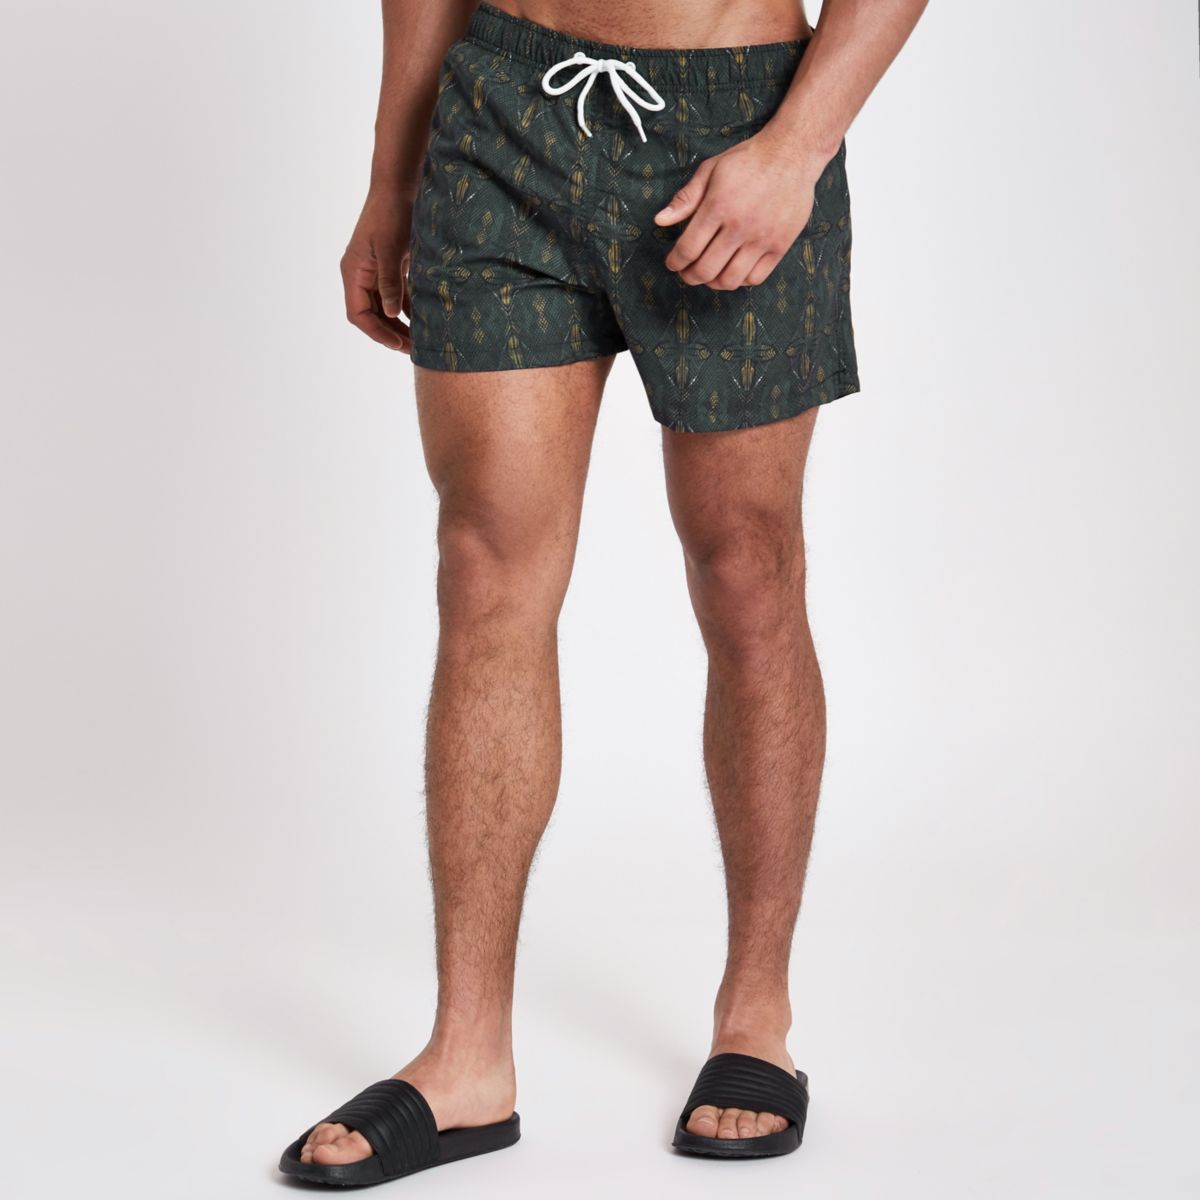 Green aztec print short swim shorts